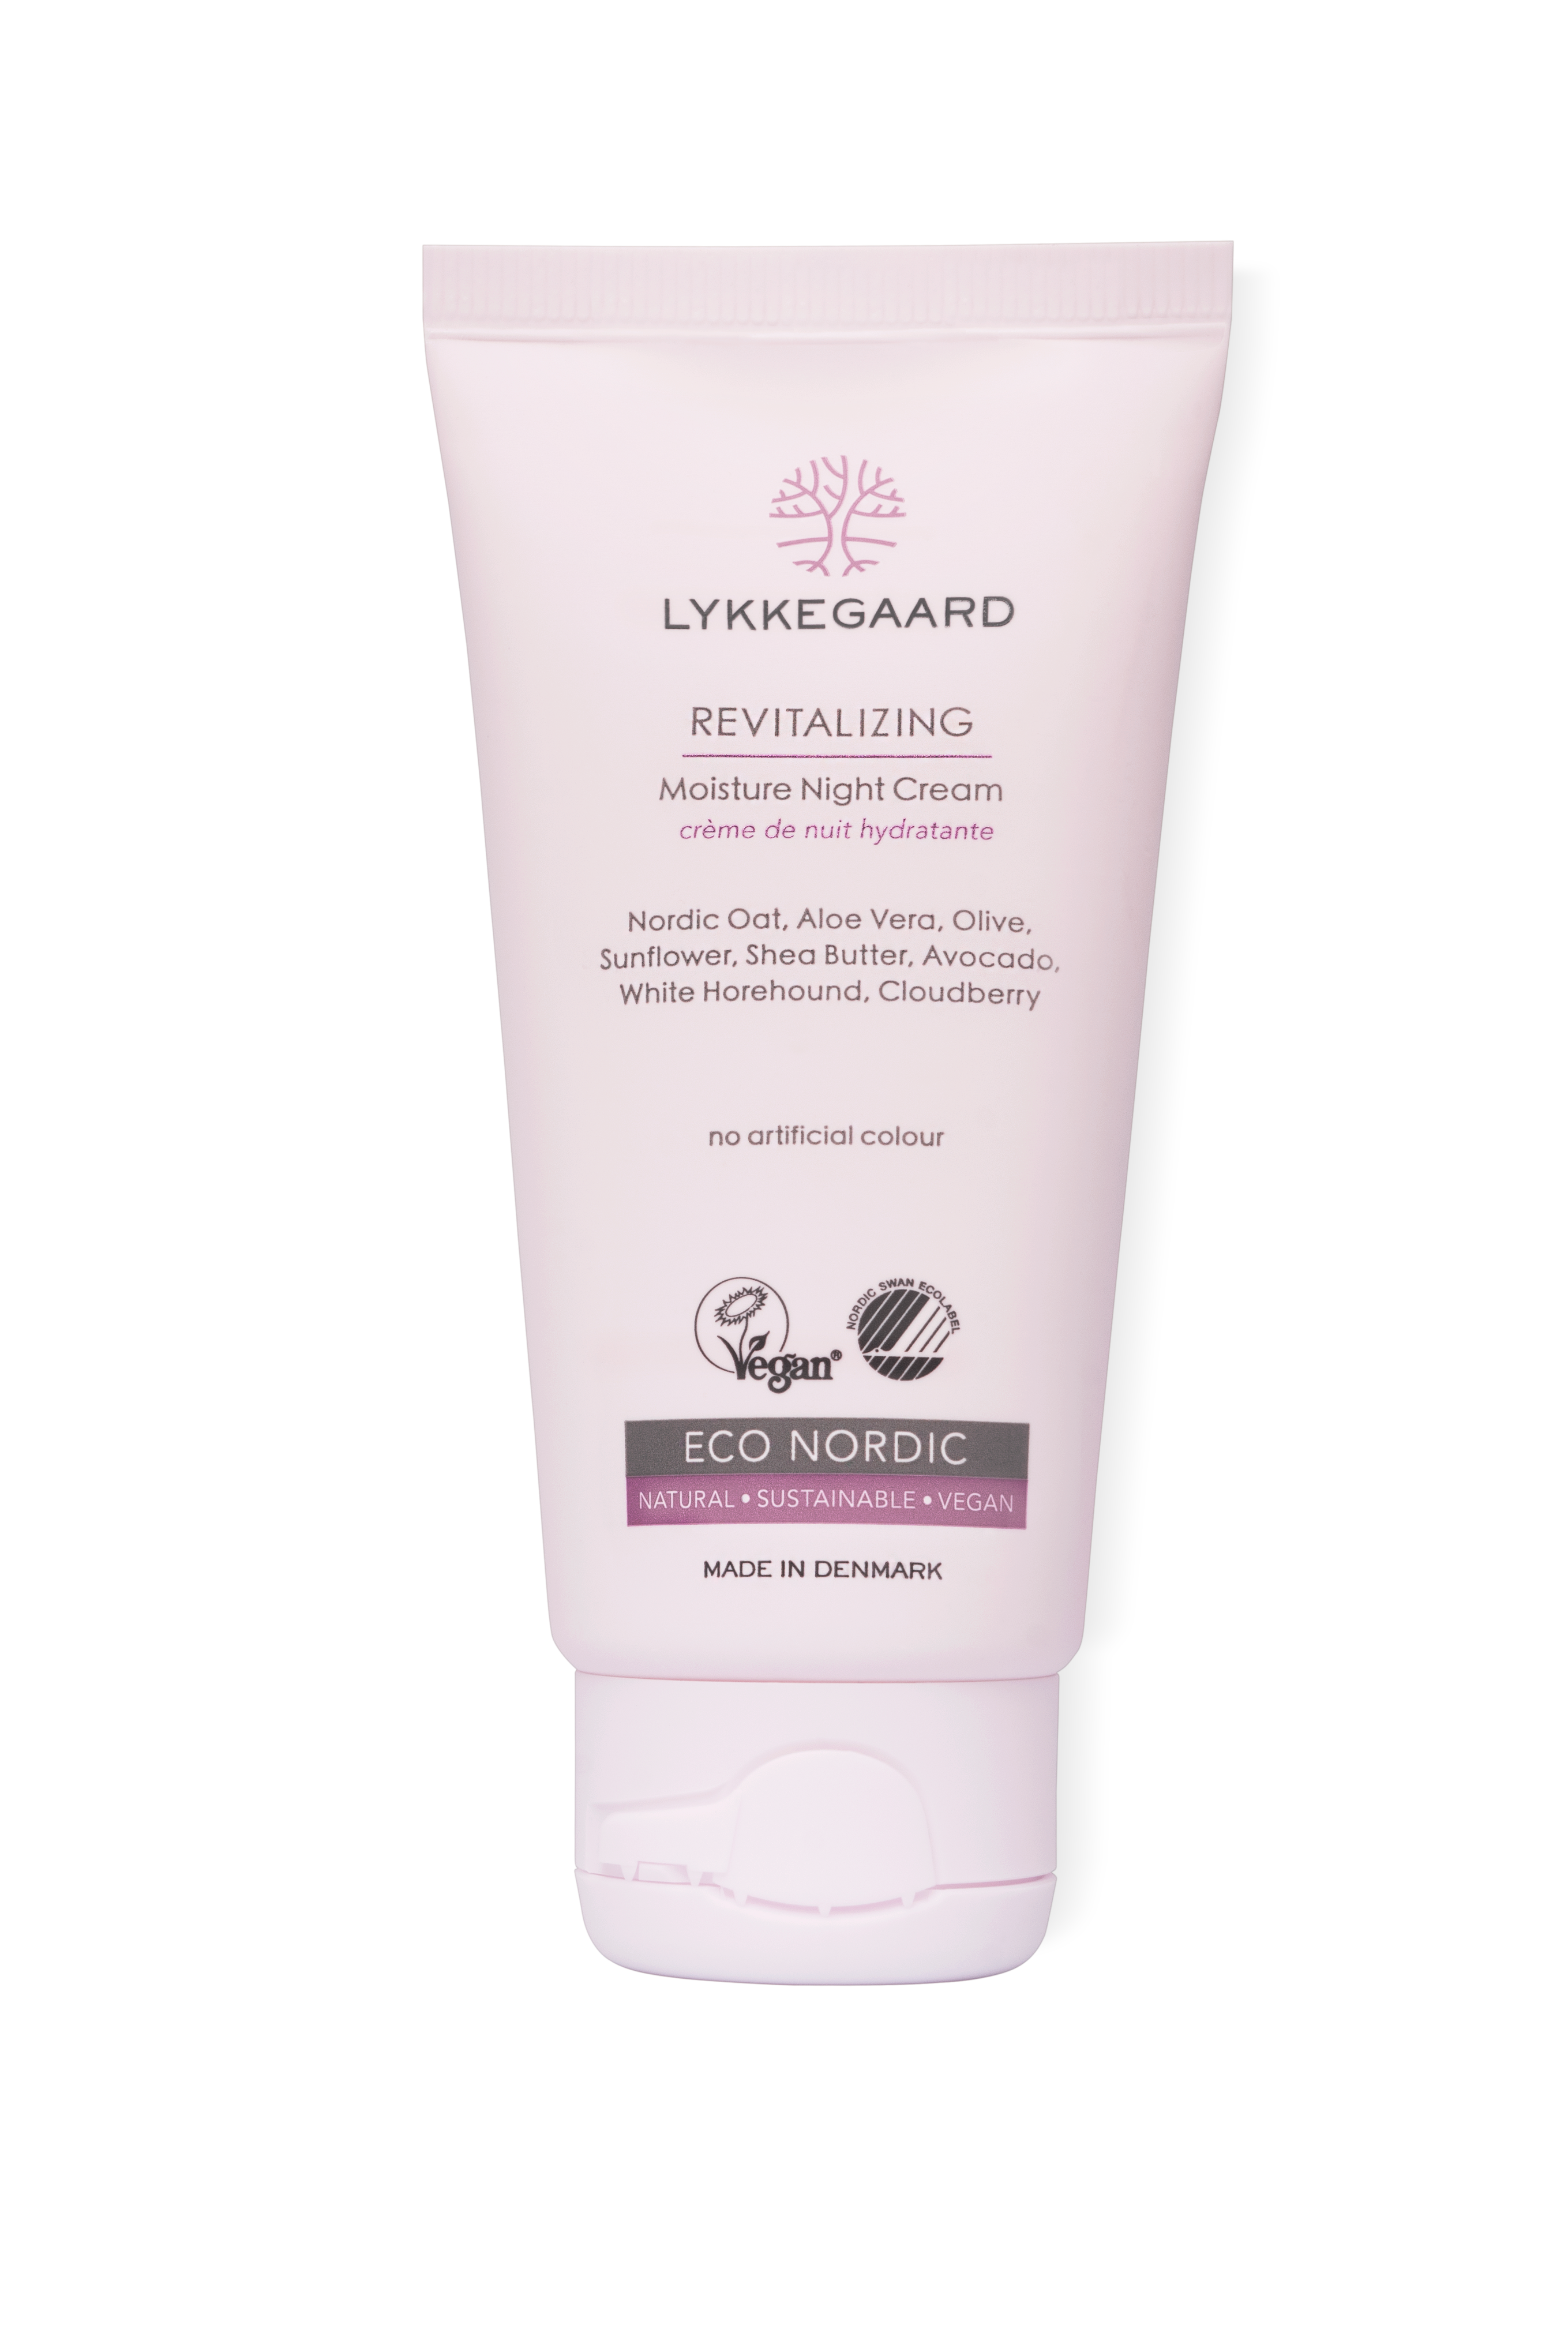 lykkegaard care revitalizing moisture night cream